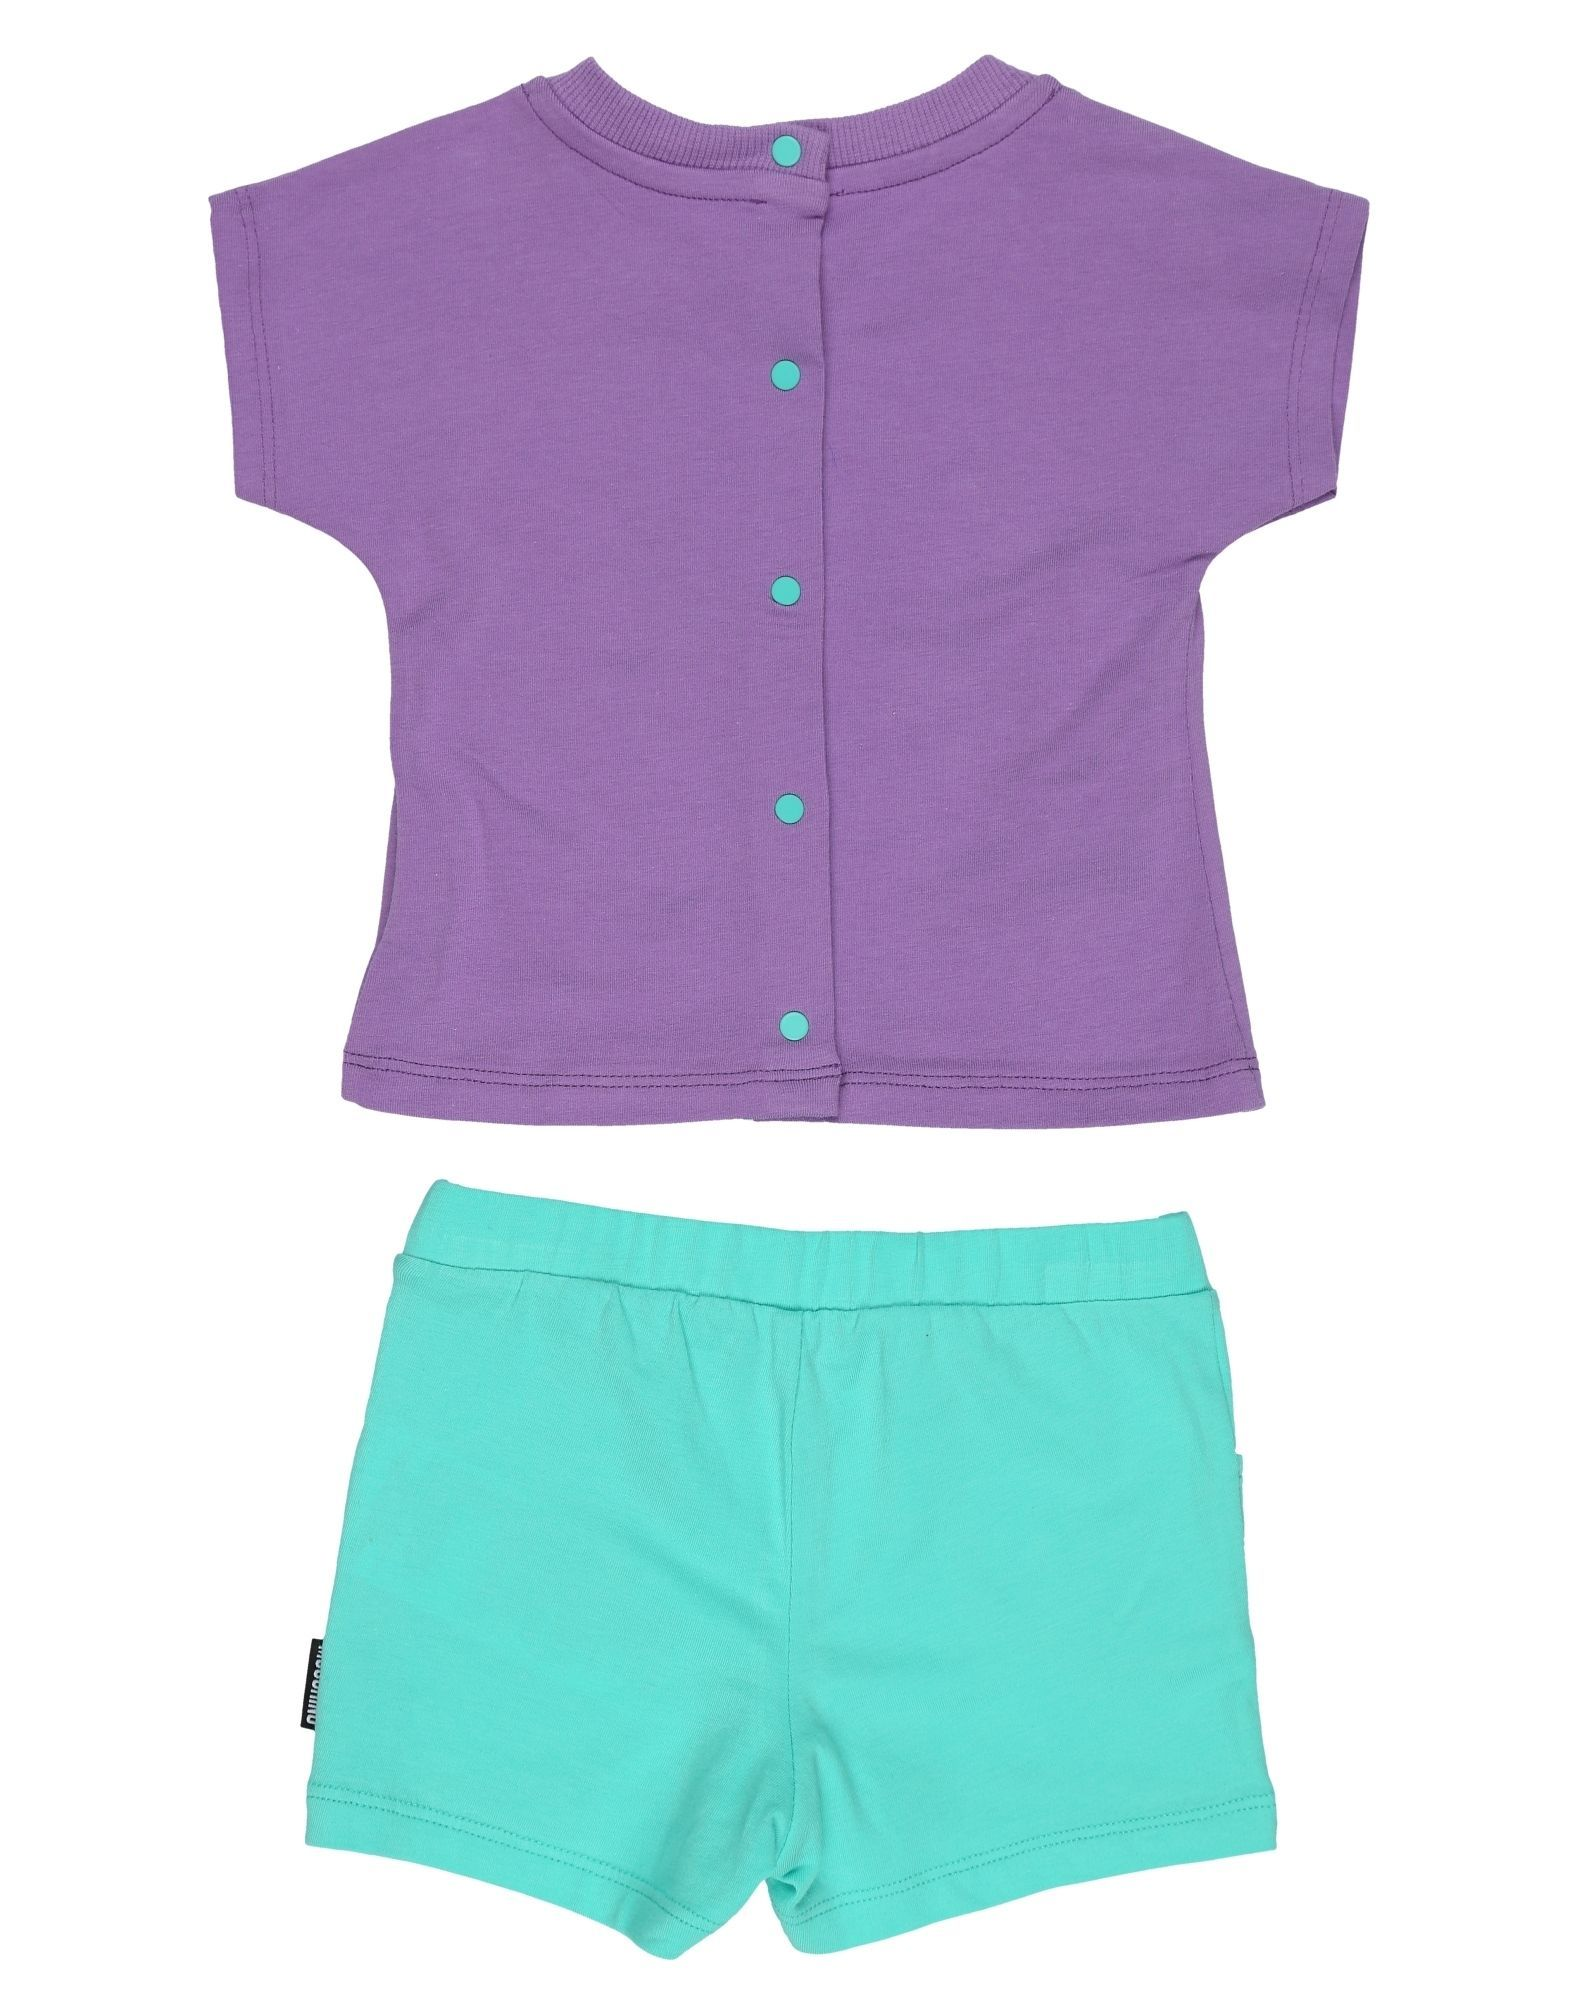 Moschino Purple Girls Cotton Set